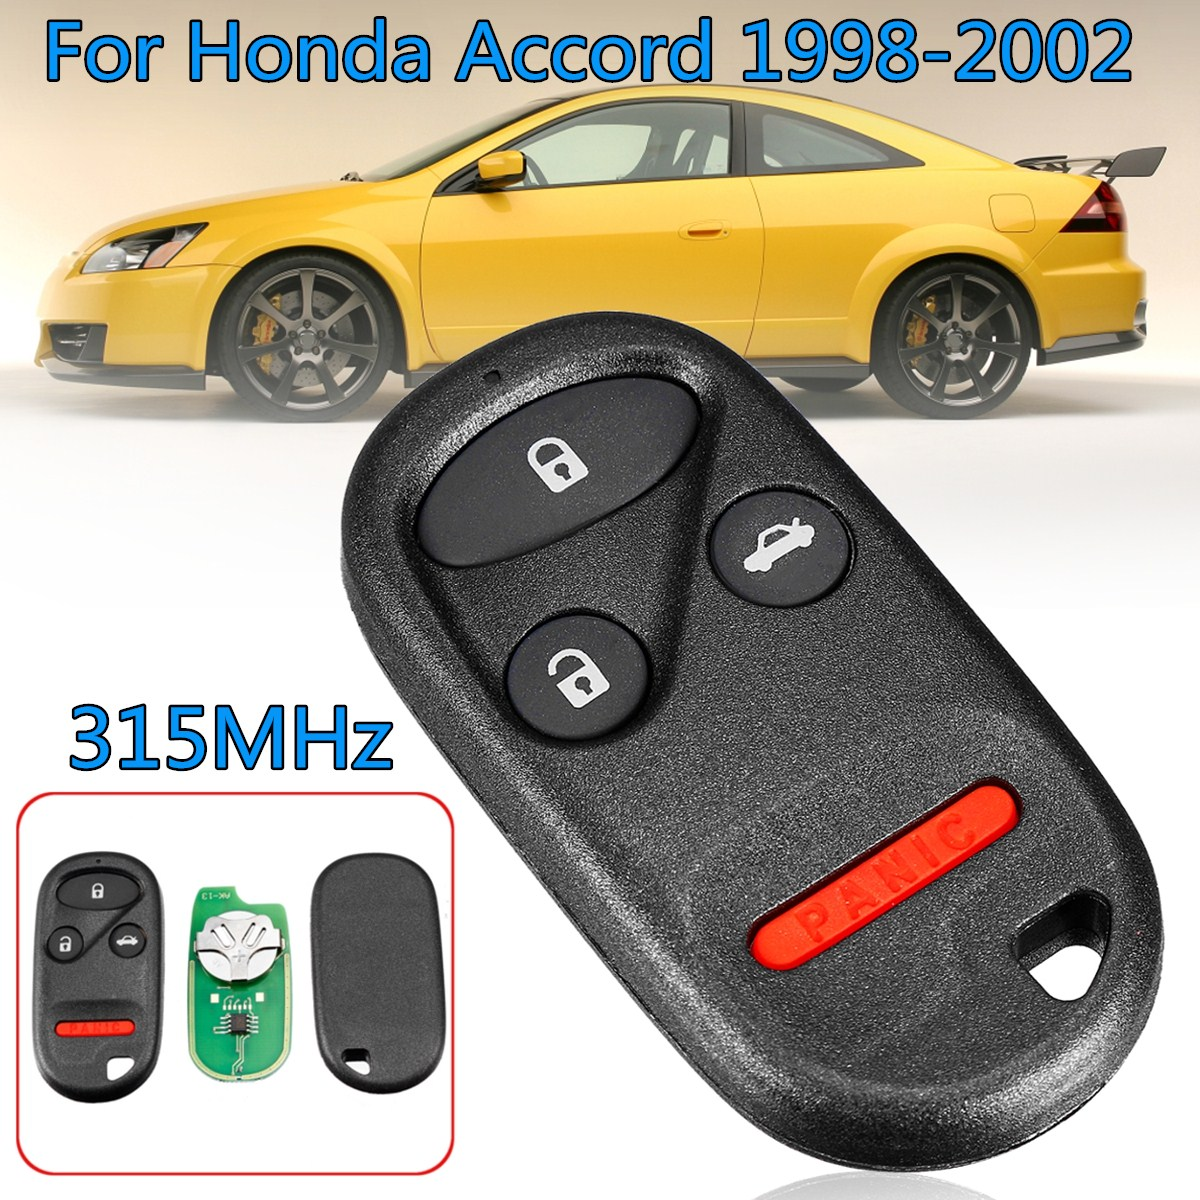 hight resolution of keyless entry remote control replacement car key with battery fob kobutah2t for honda accord 1998 2002 315mhz 4buttons